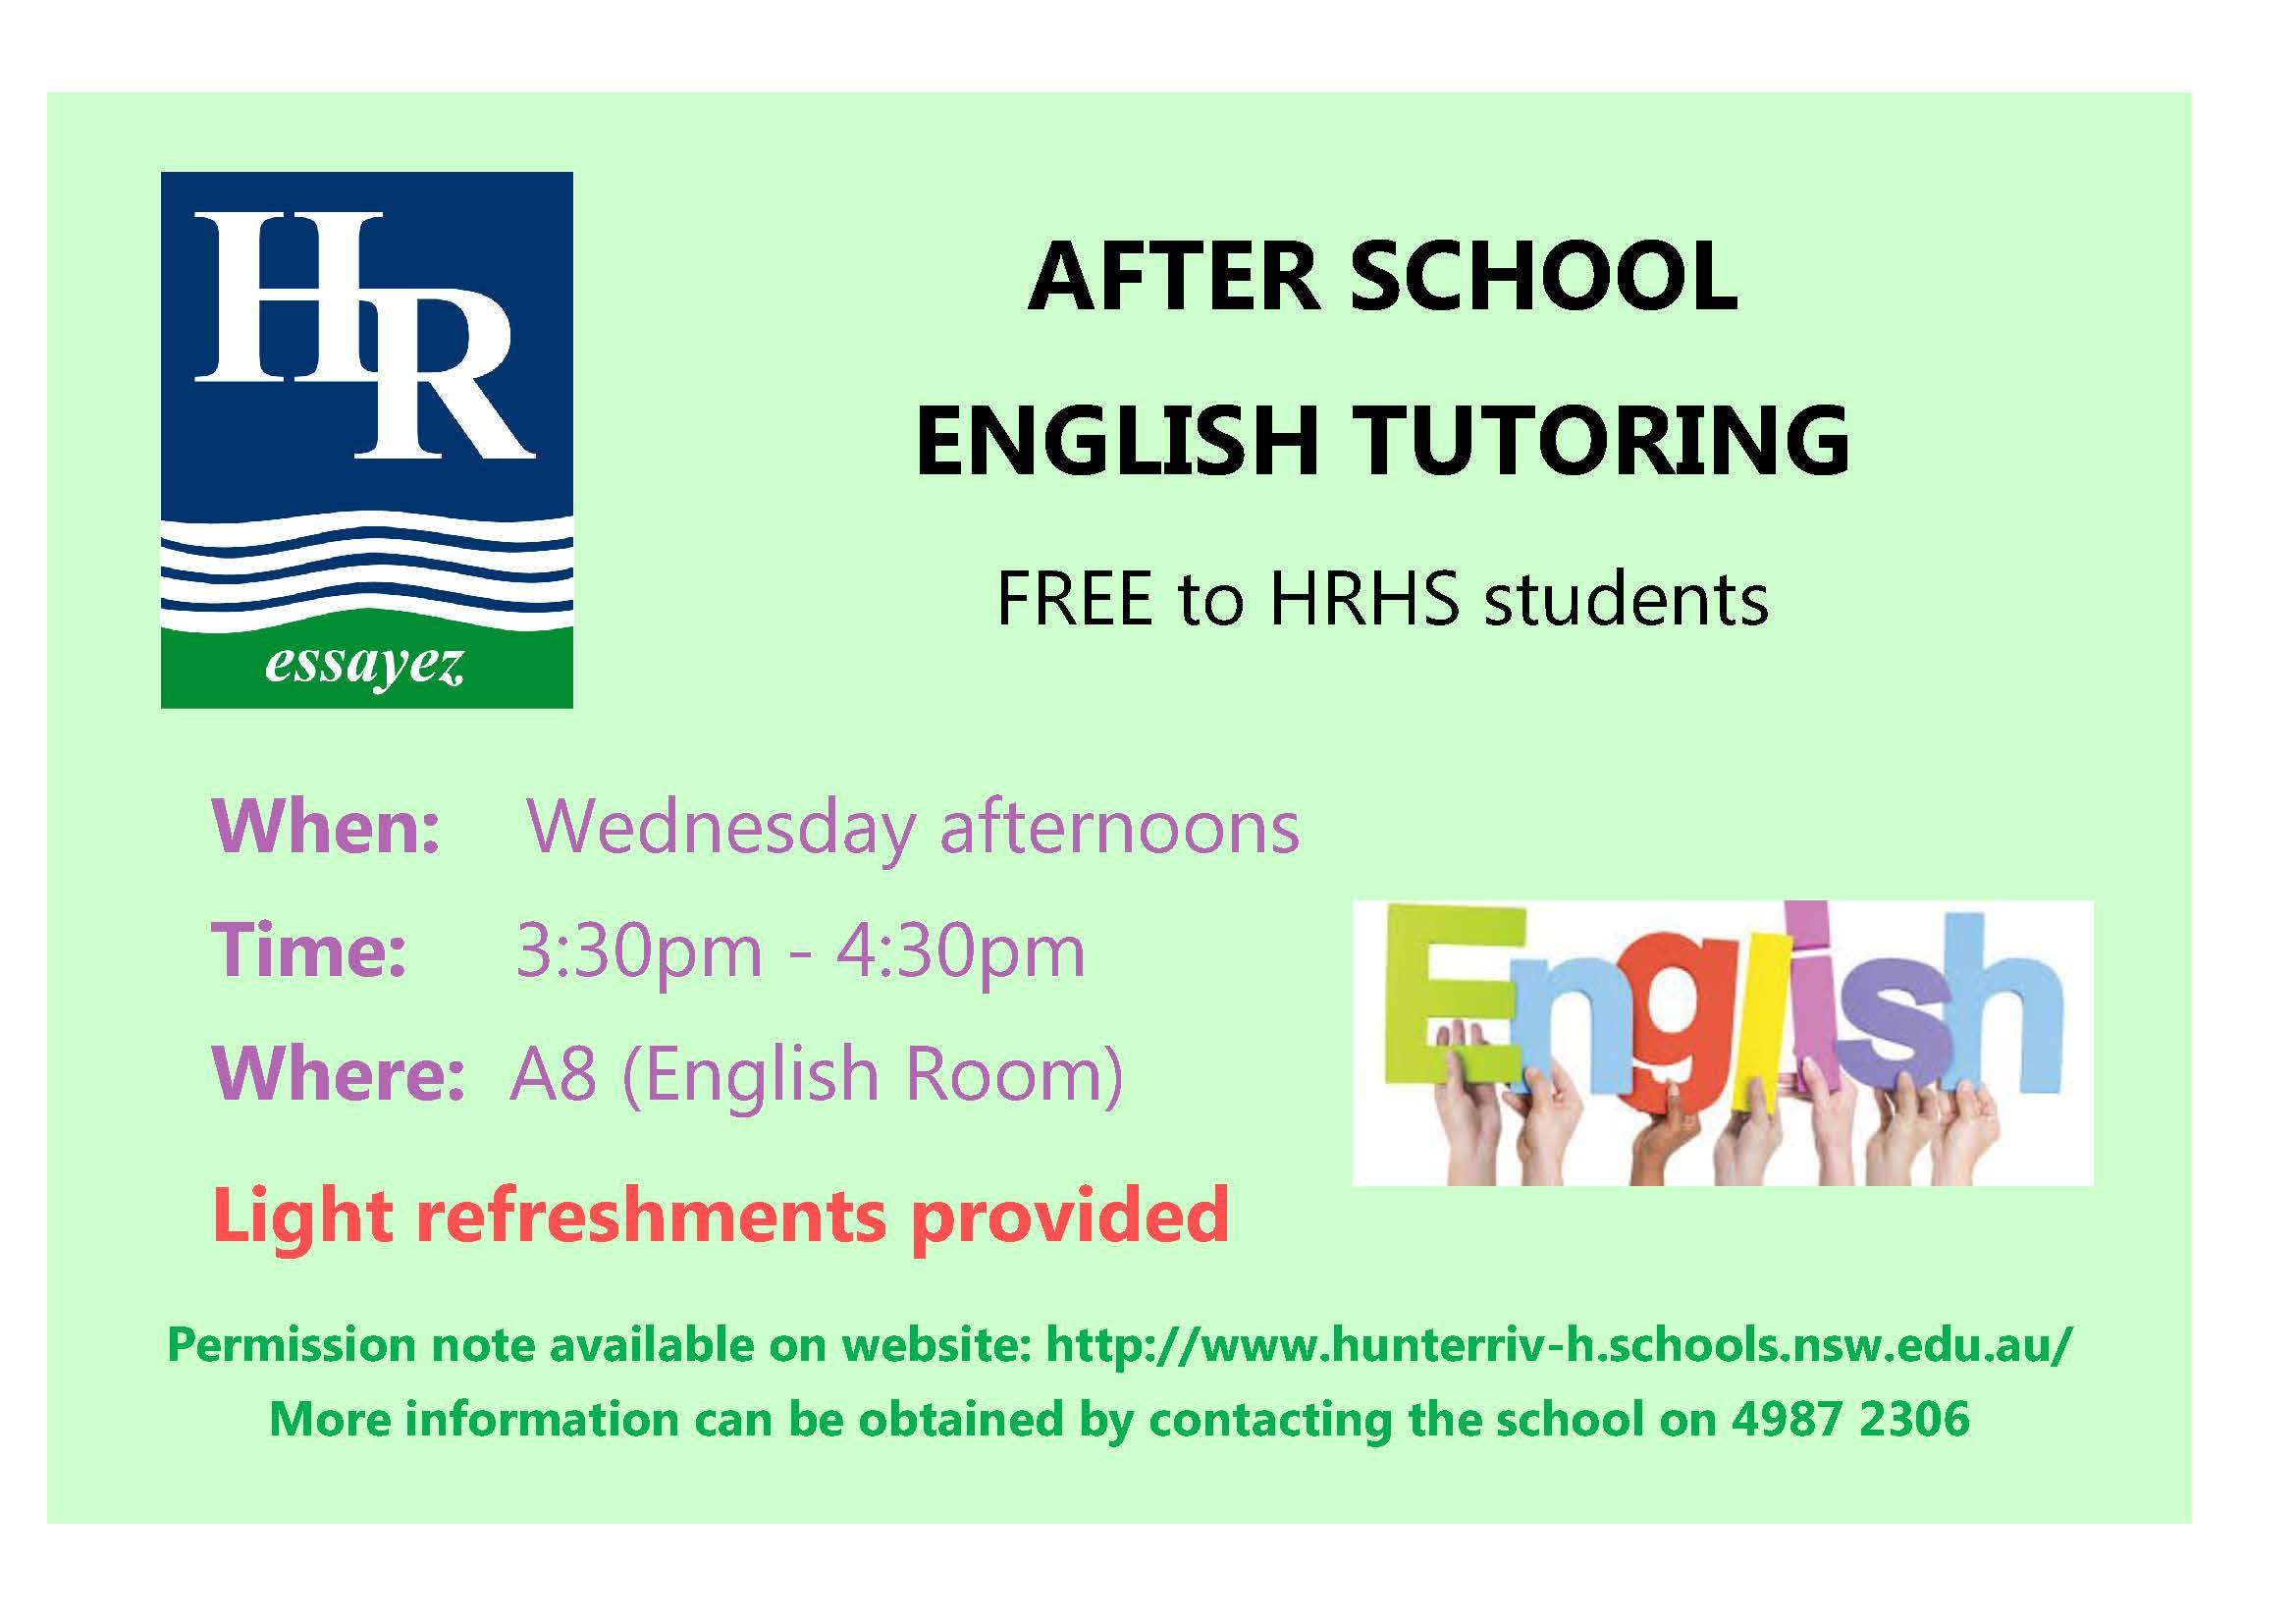 English Tutoring note